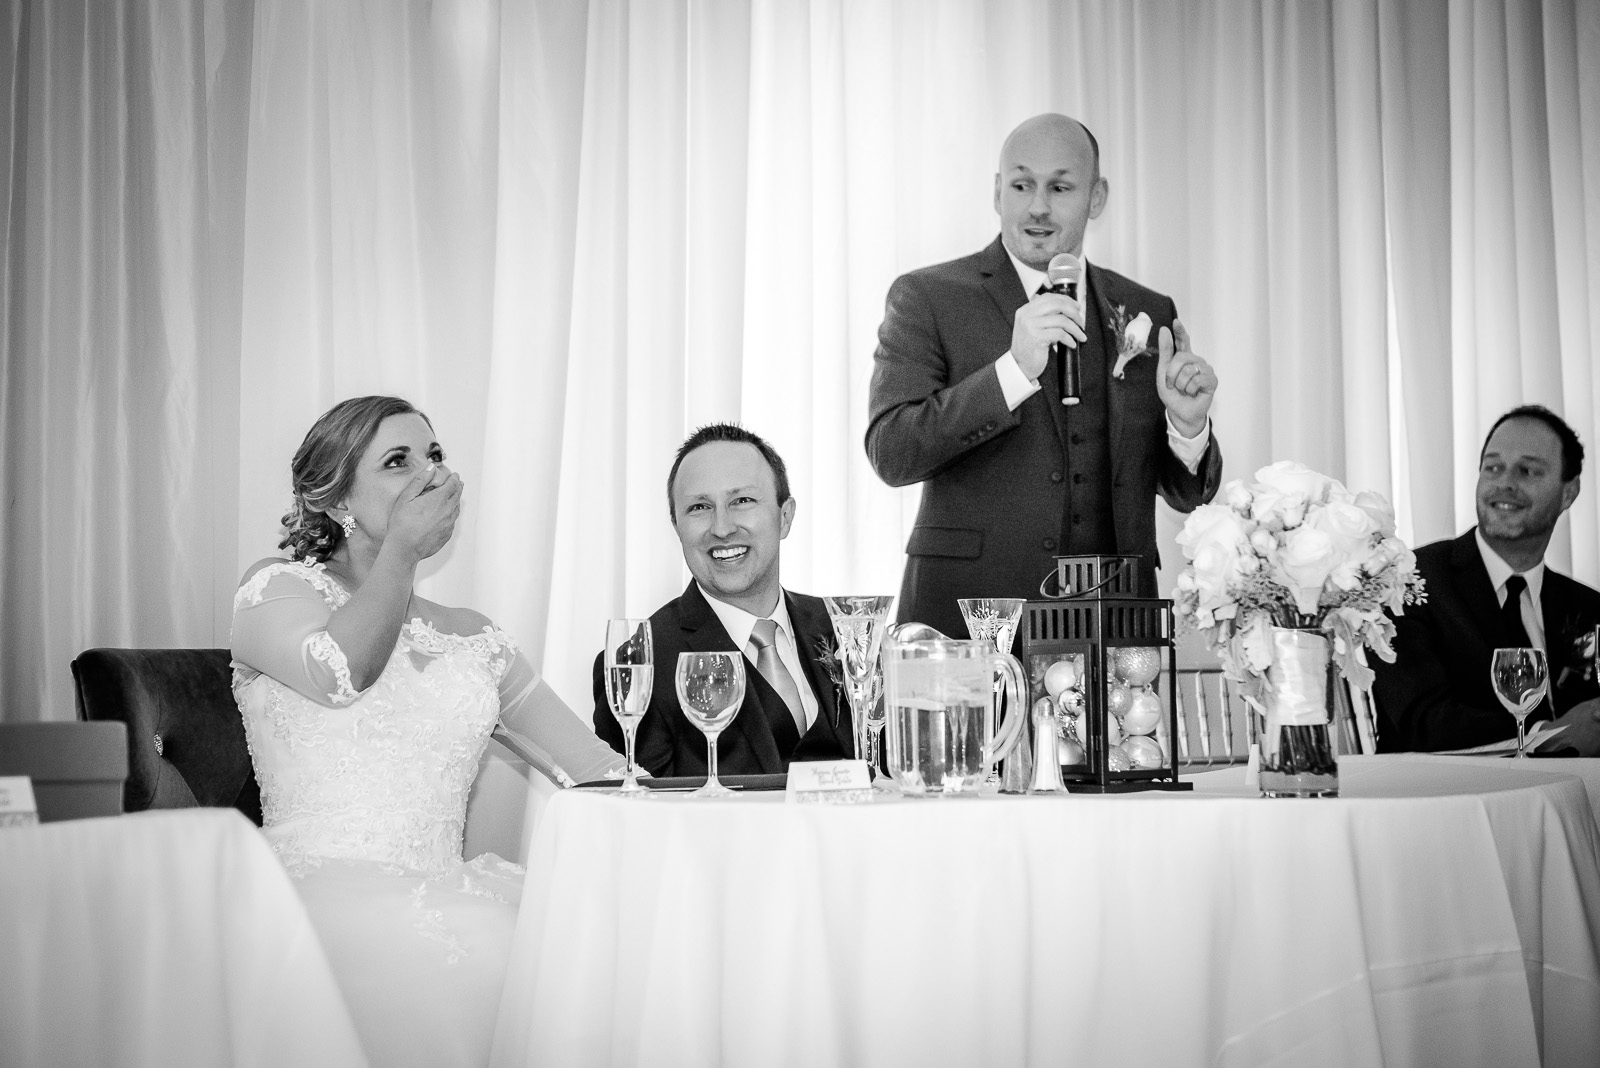 Eric_and_Christy_Photography_Blog_2017_Best_Moments-53